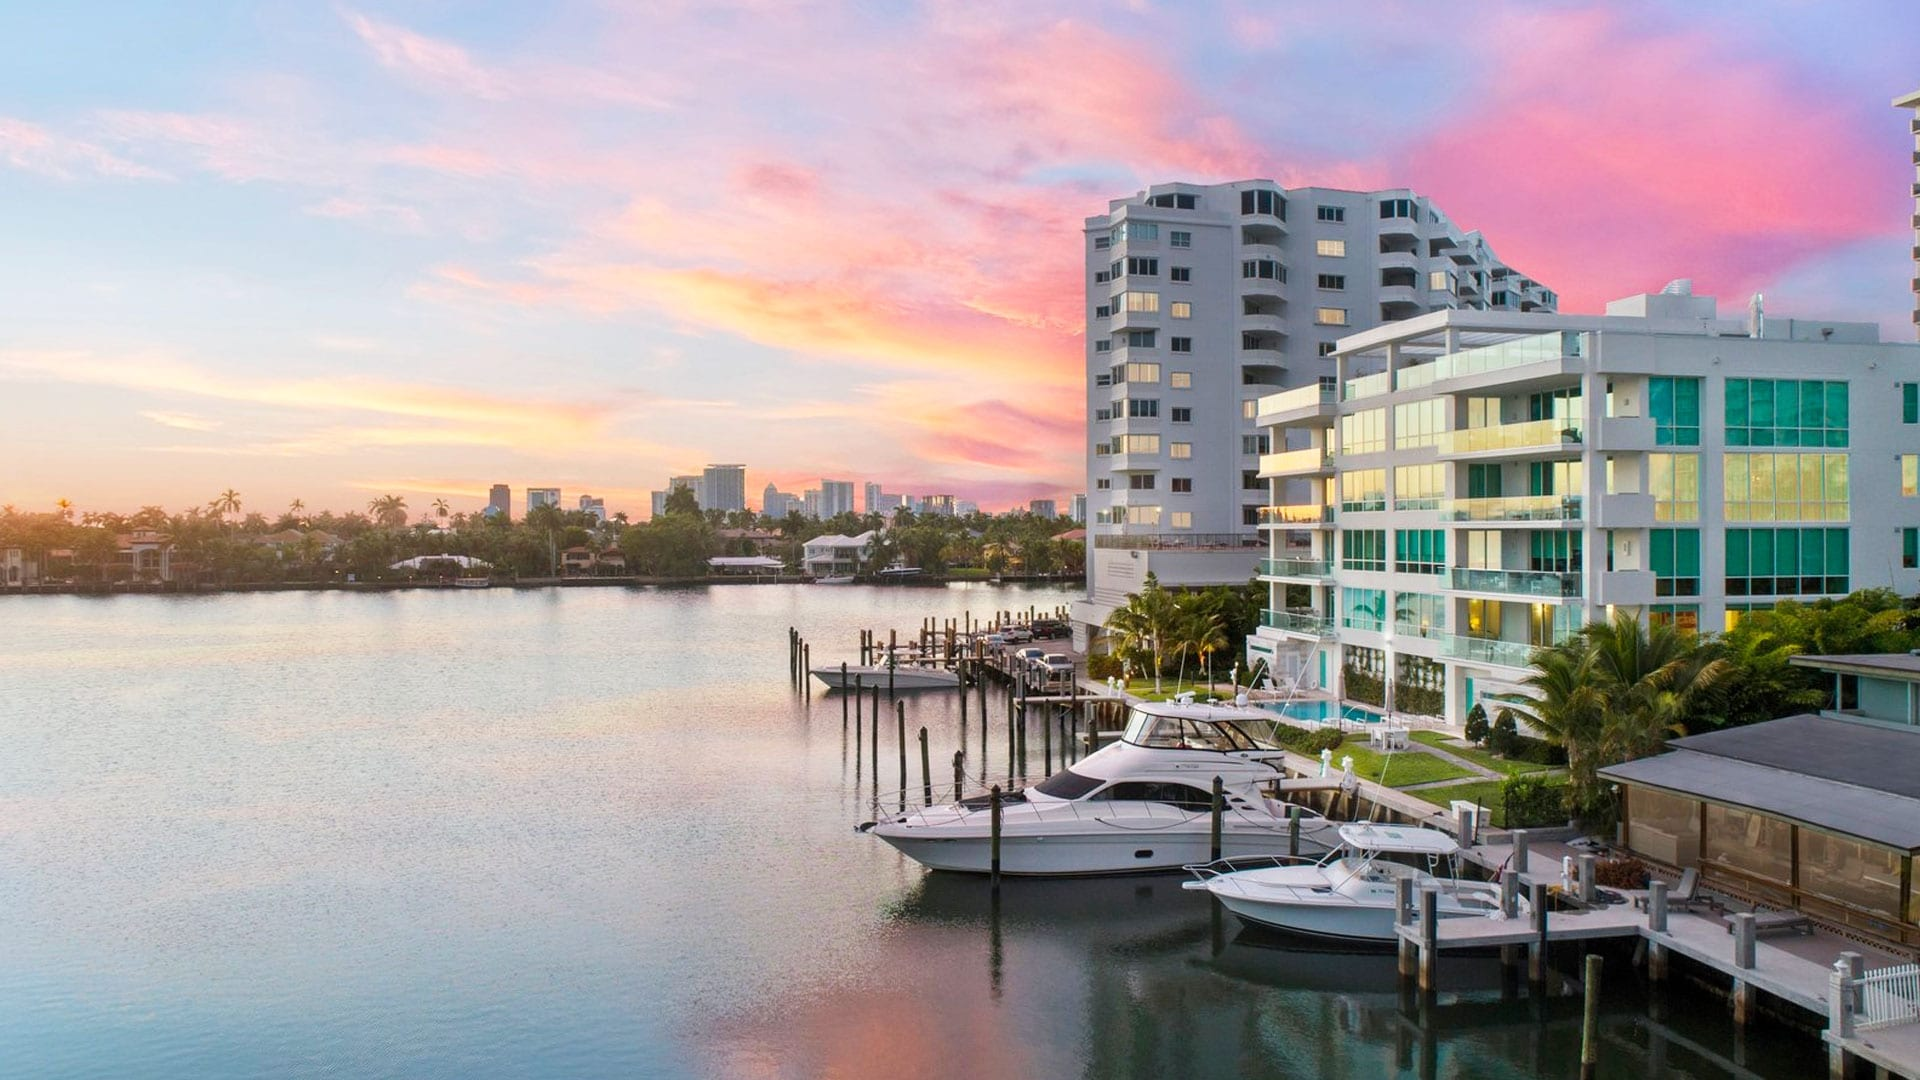 353 Sunset Lake Boutique Luxury Condos designed by Swedroe Architecture - Miami